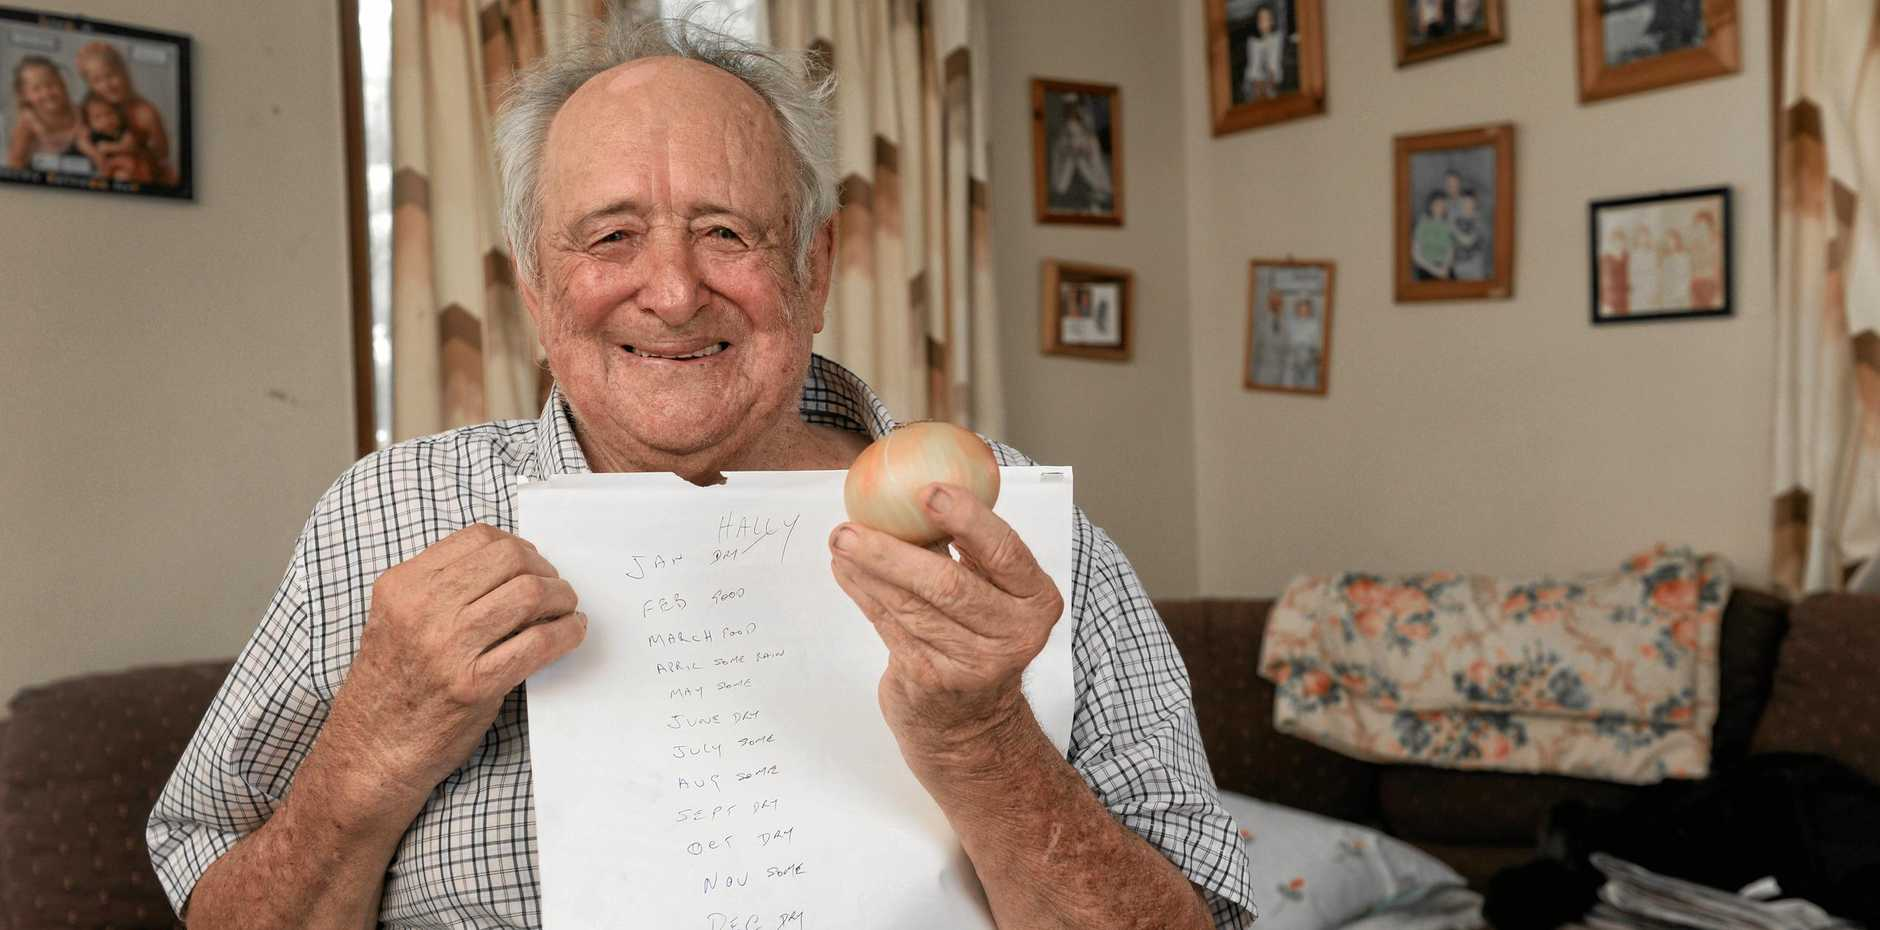 Hally Herrmann has made his onion weather predictions for 2019.